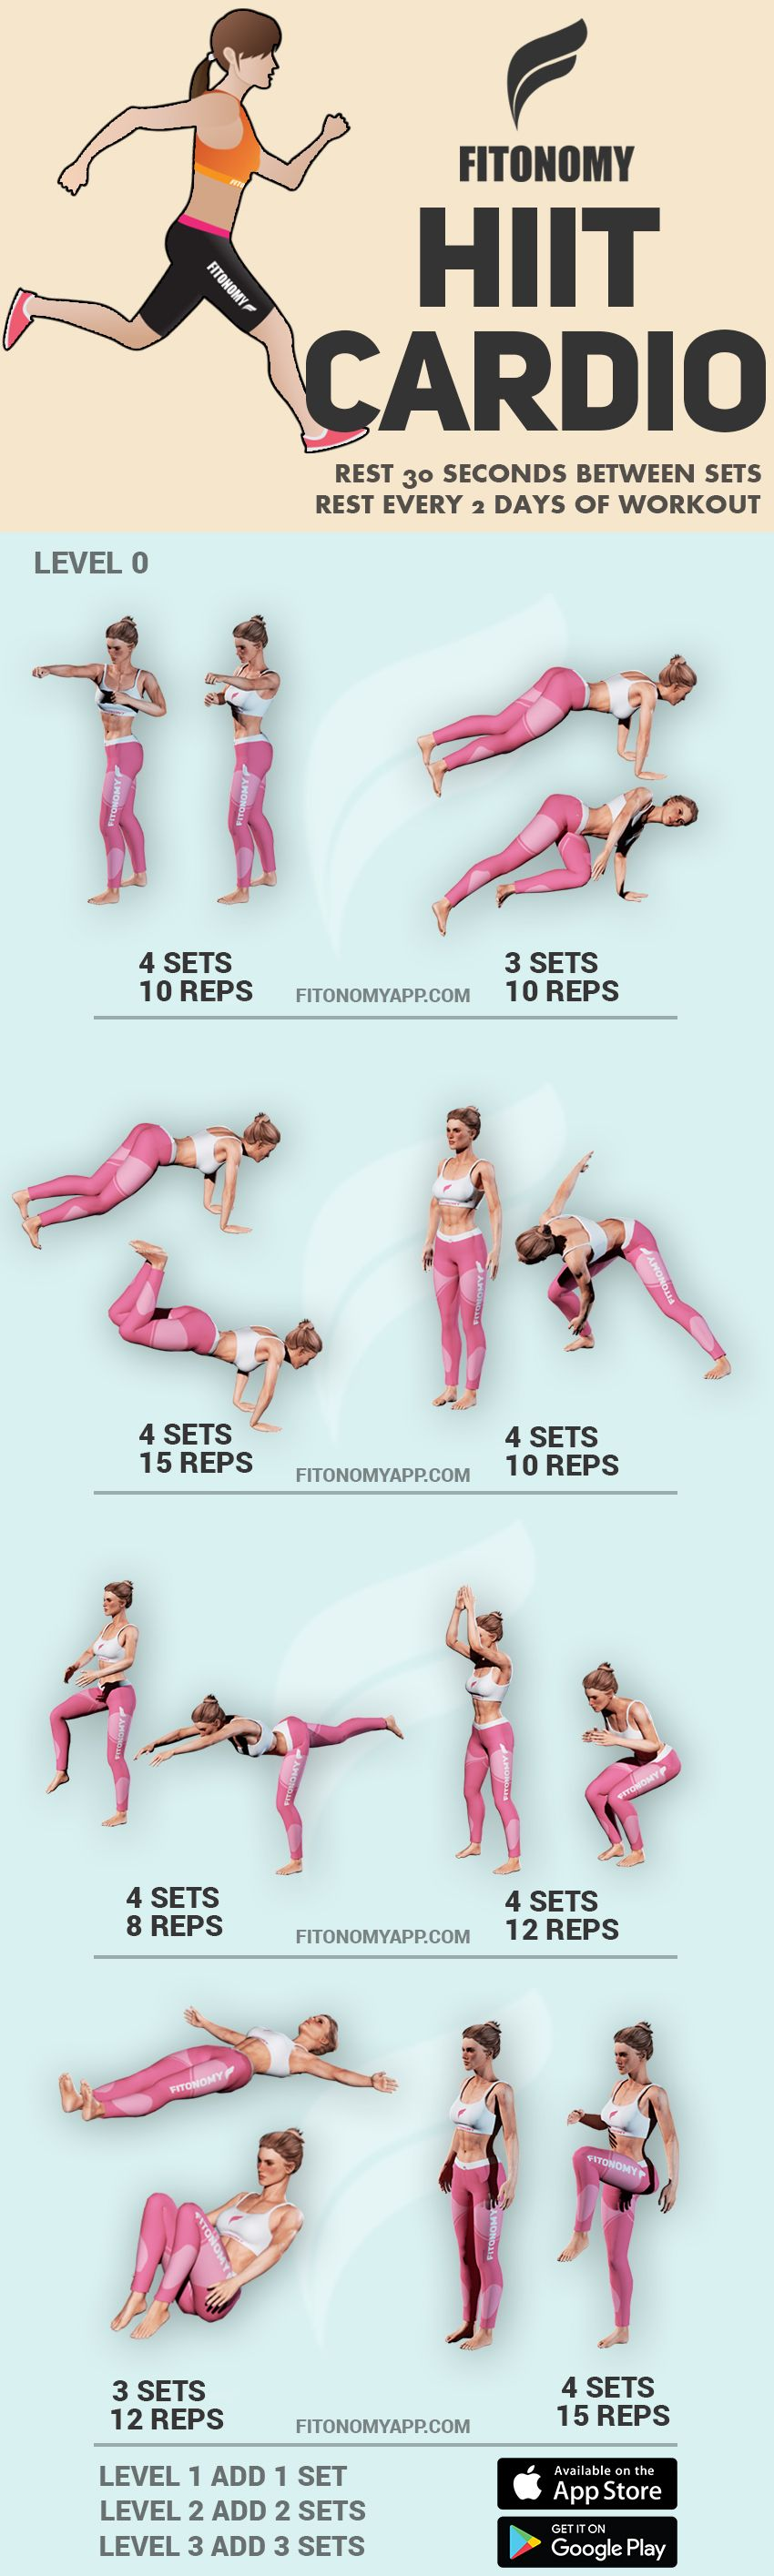 Hiit cardio download fitonomy app for more routines like